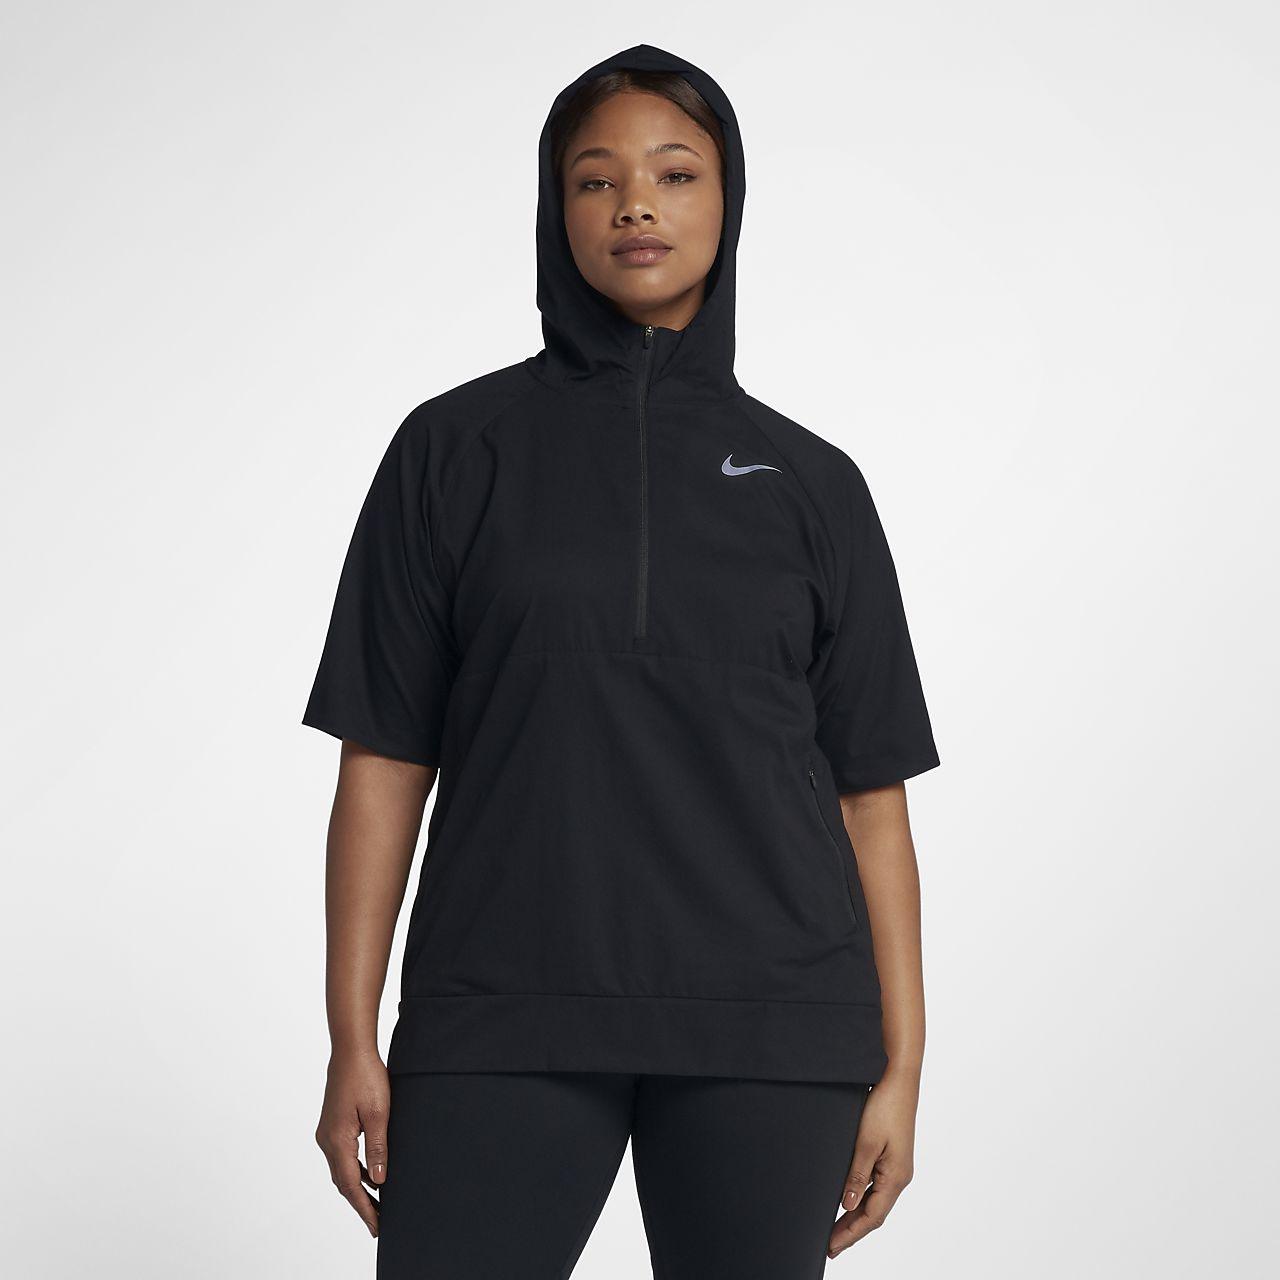 fb05419122e Nike Flex (Plus Size) Women s Running Jacket. Nike.com AU